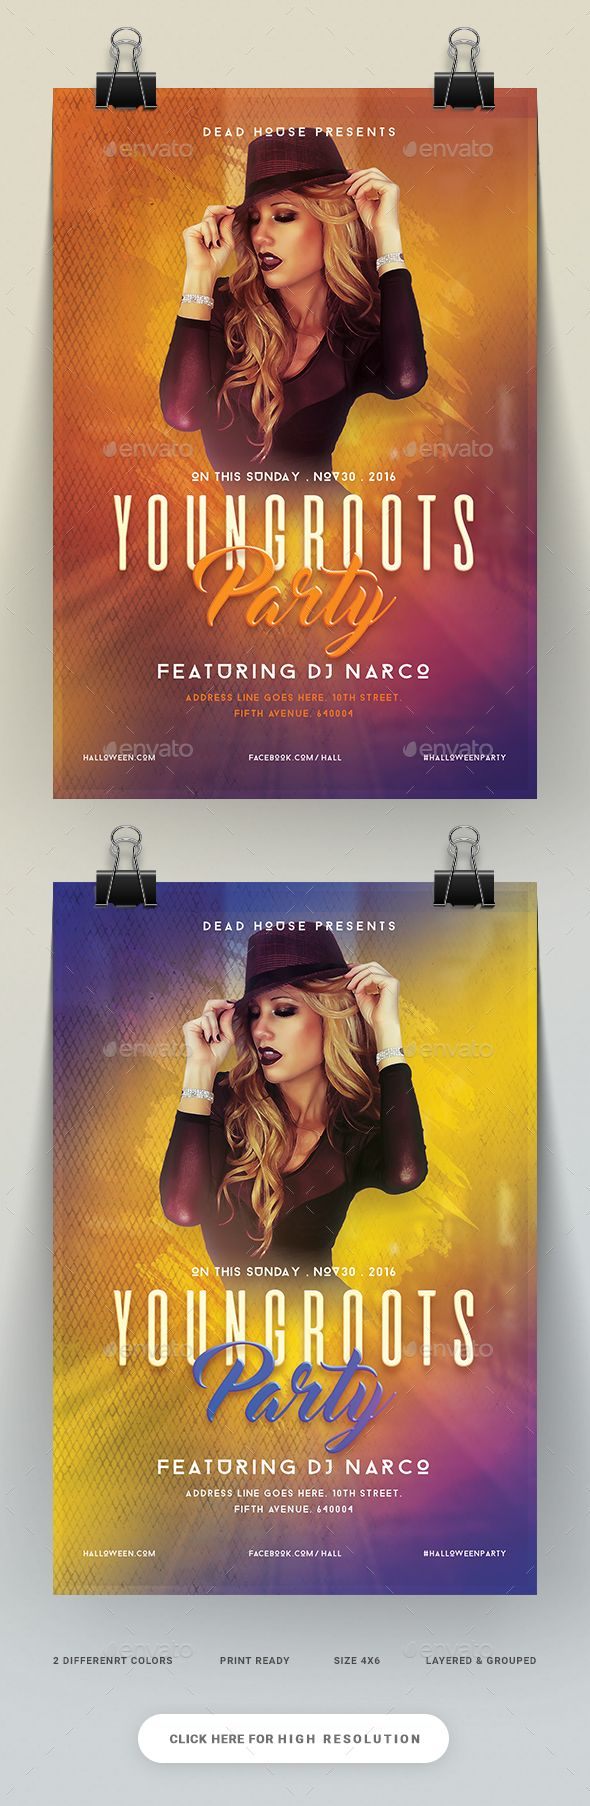 Young Roots Party Flyer  — PSD Template #electro #special guest dj • Download ➝ https://graphicriver.net/item/young-roots-party-flyer/18149380?ref=pxcr